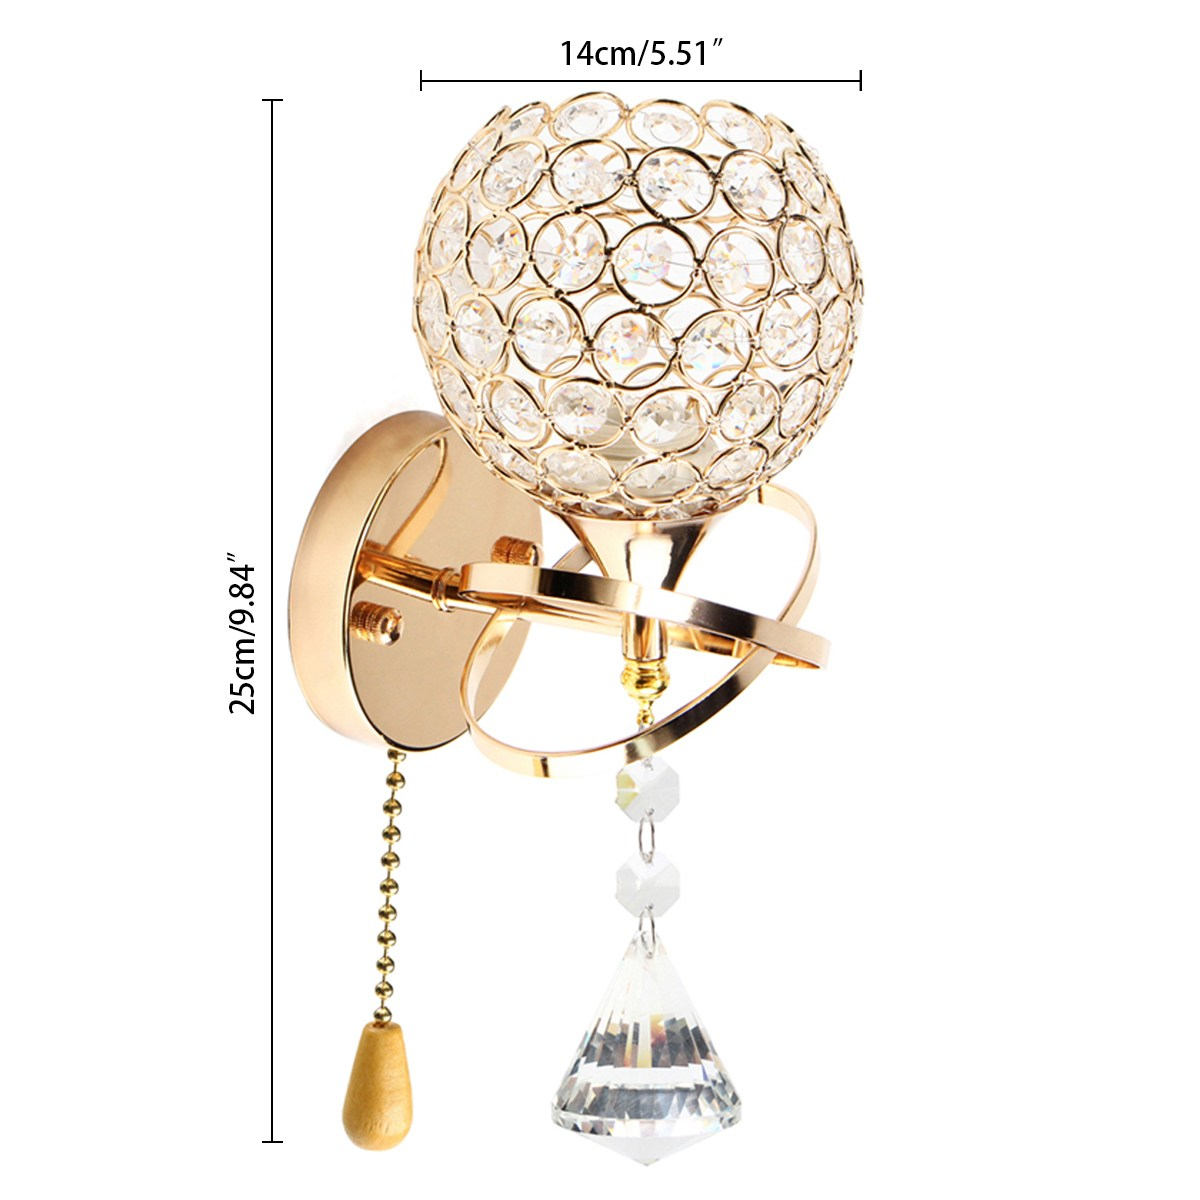 Modern crystal wall lamp sconce pull chain cord switch light fixture modern crystal wall lamp sconce pull chain cord switch light fixture silvergolden bedroom hallway indoor lighting home decor in led indoor wall lamps from arubaitofo Gallery